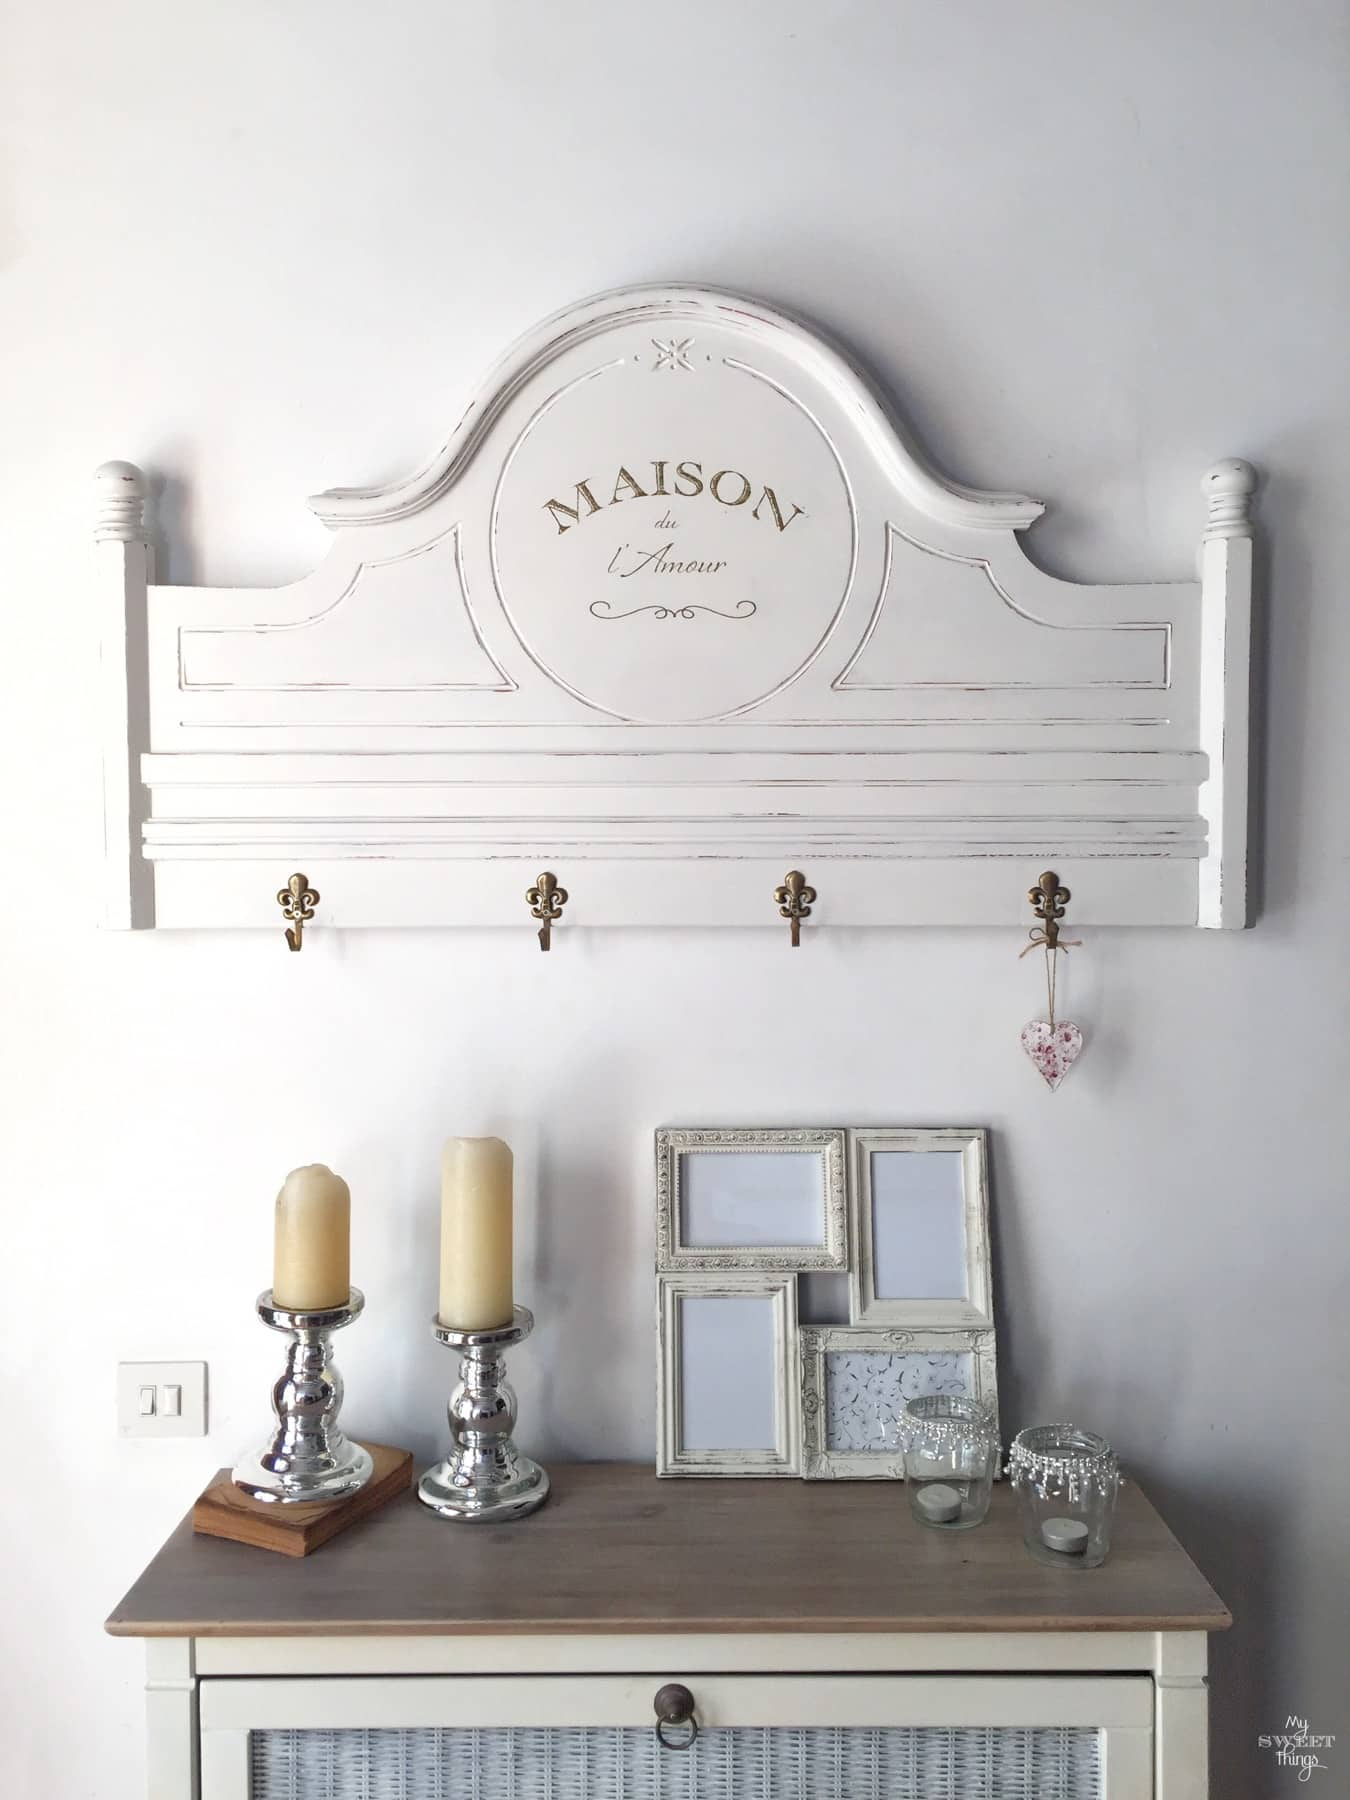 How to make a rack from a footboard  ·  Via www.sweethings.net